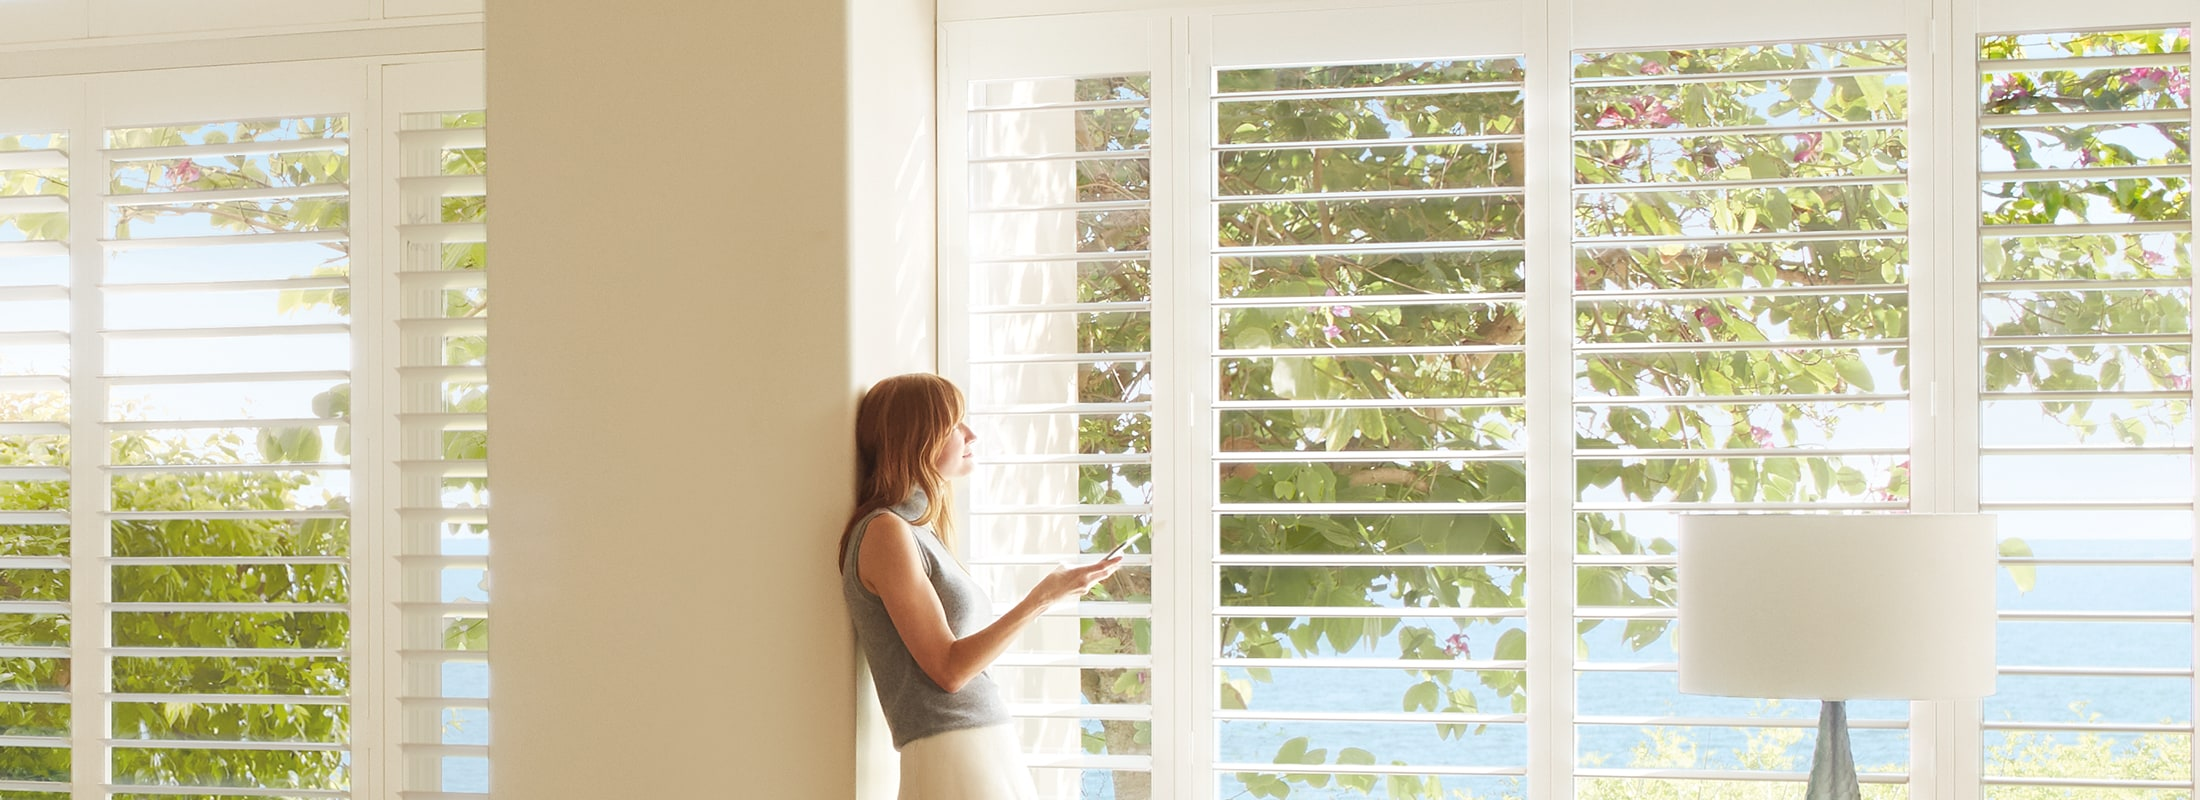 Poly Shutters Palm Beach Polysatin Shutters Hunter